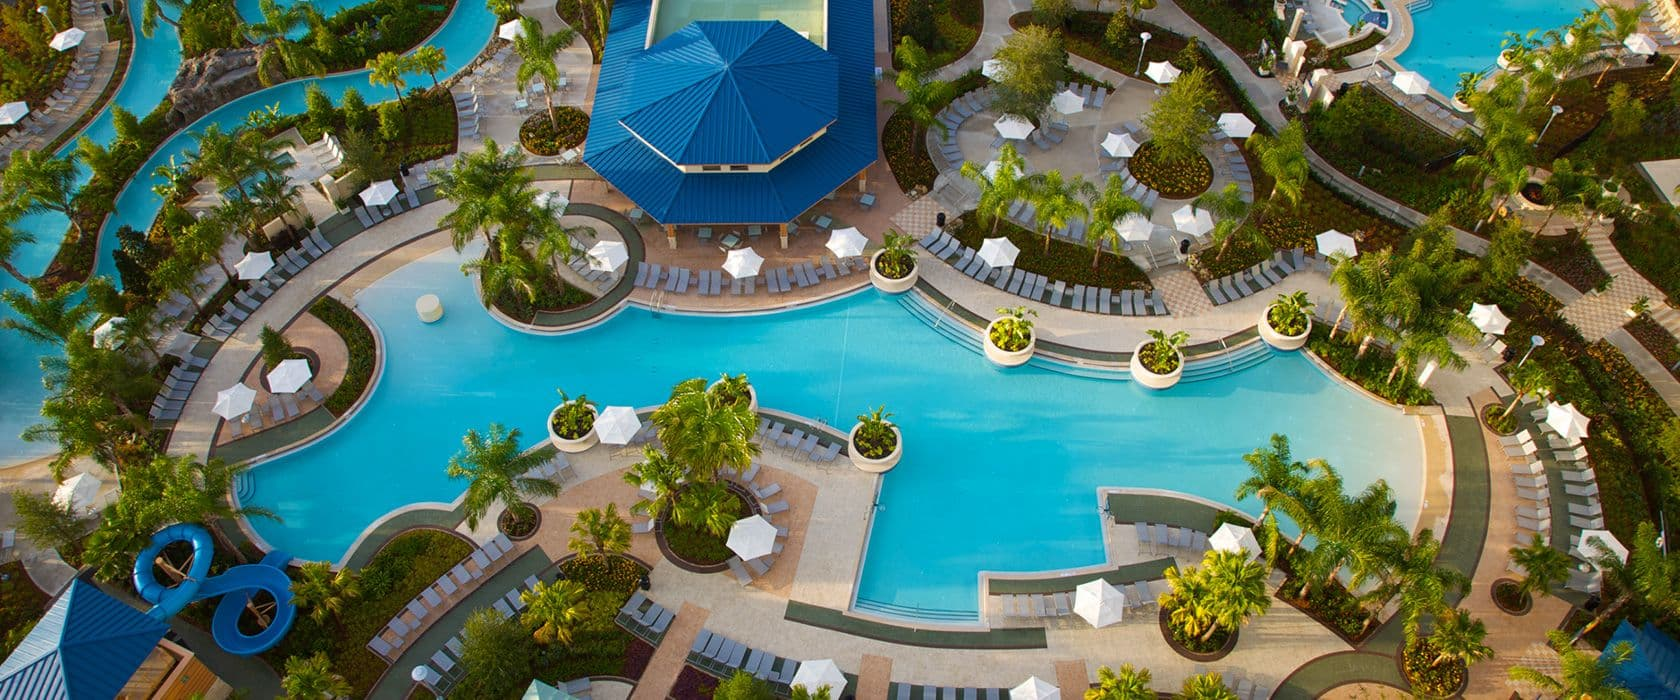 pools lazy river recreation hilton orlando lazy river swimming pool designs. Interior Design Ideas. Home Design Ideas